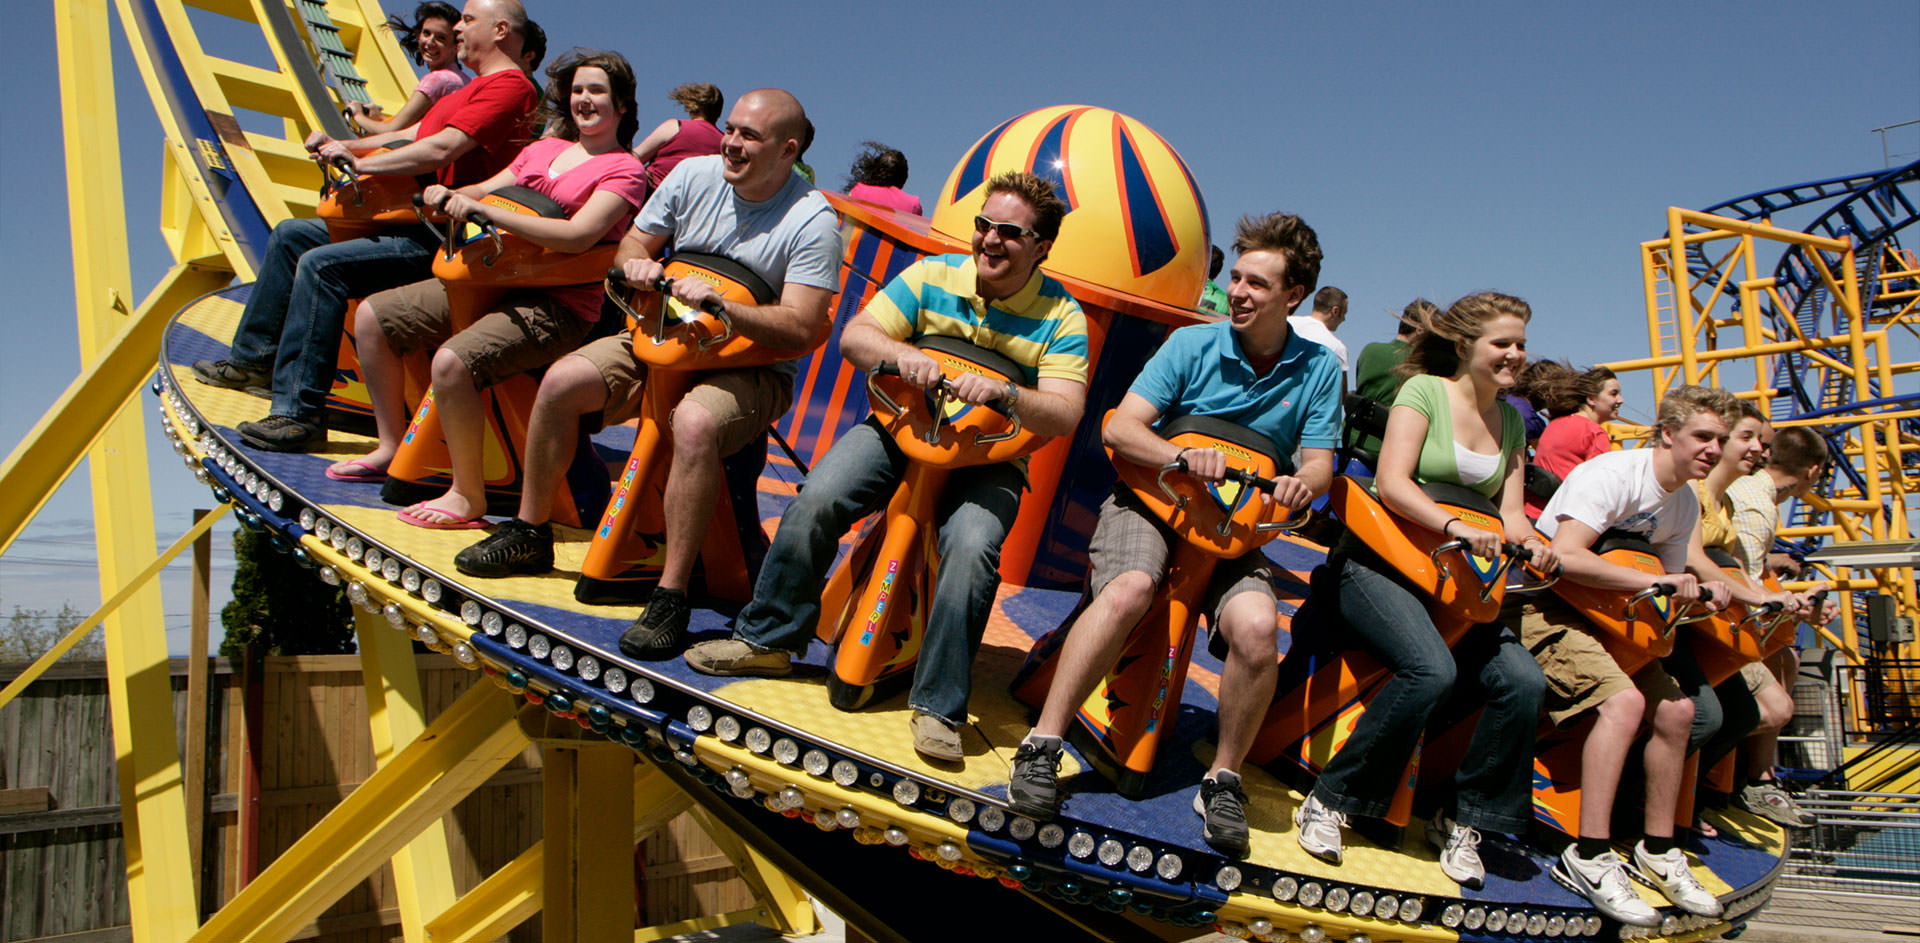 People riding the Whirlwind roller coaster ride.